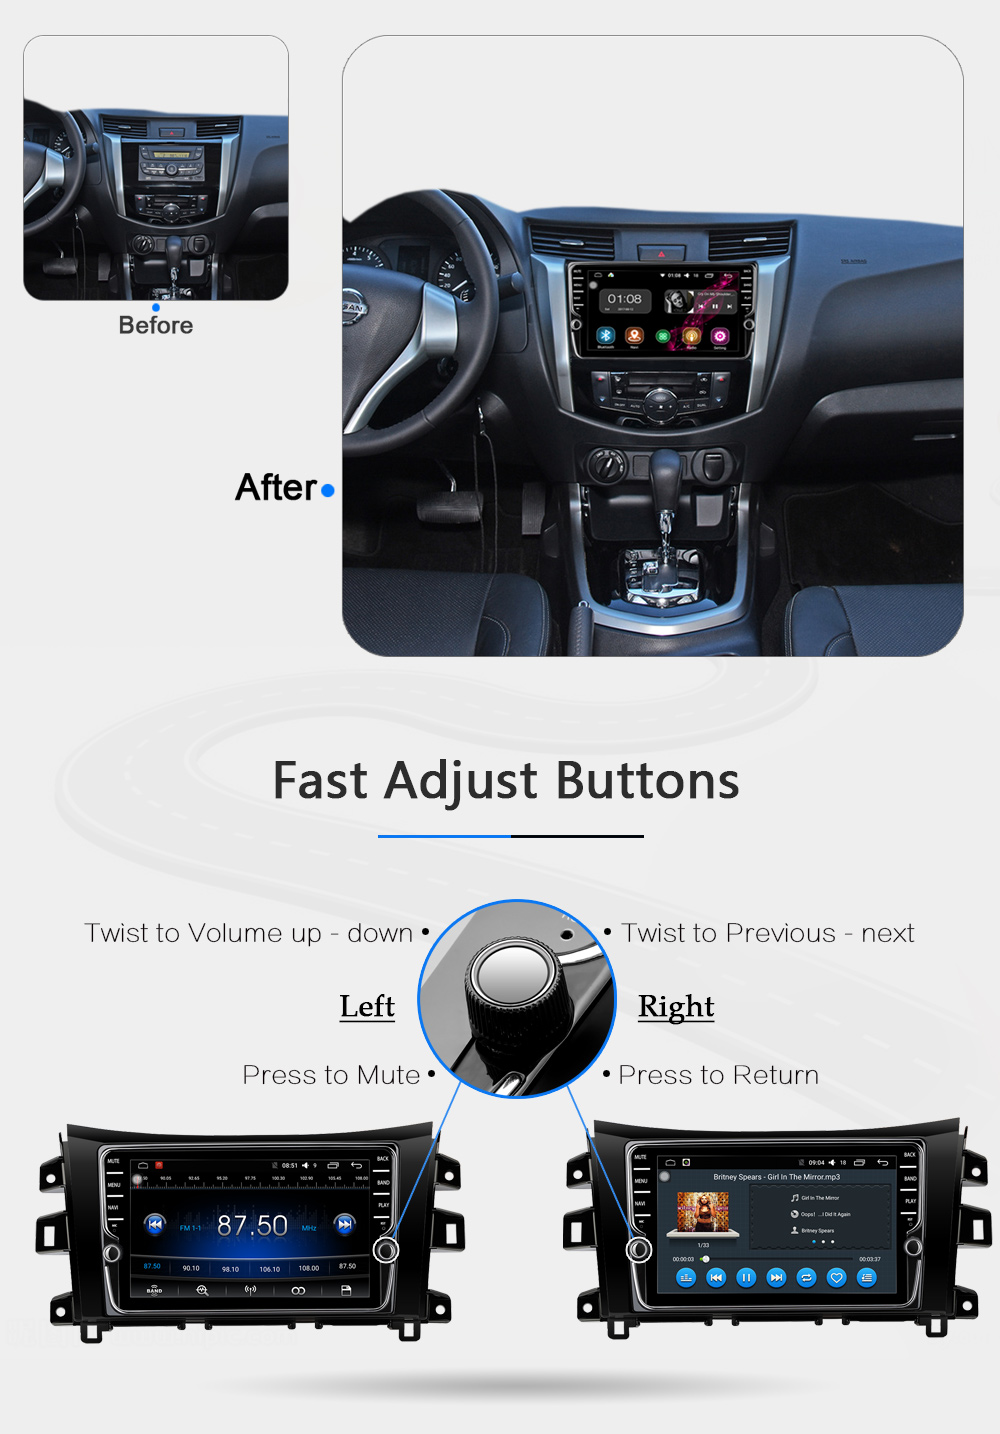 WITSON S190 Android 7.1 quad core Car Dvd Navi Player For NISSAN NAVARANP300 2G ROM External Microphone+ DAB +WIFI+OBD+DVB-T